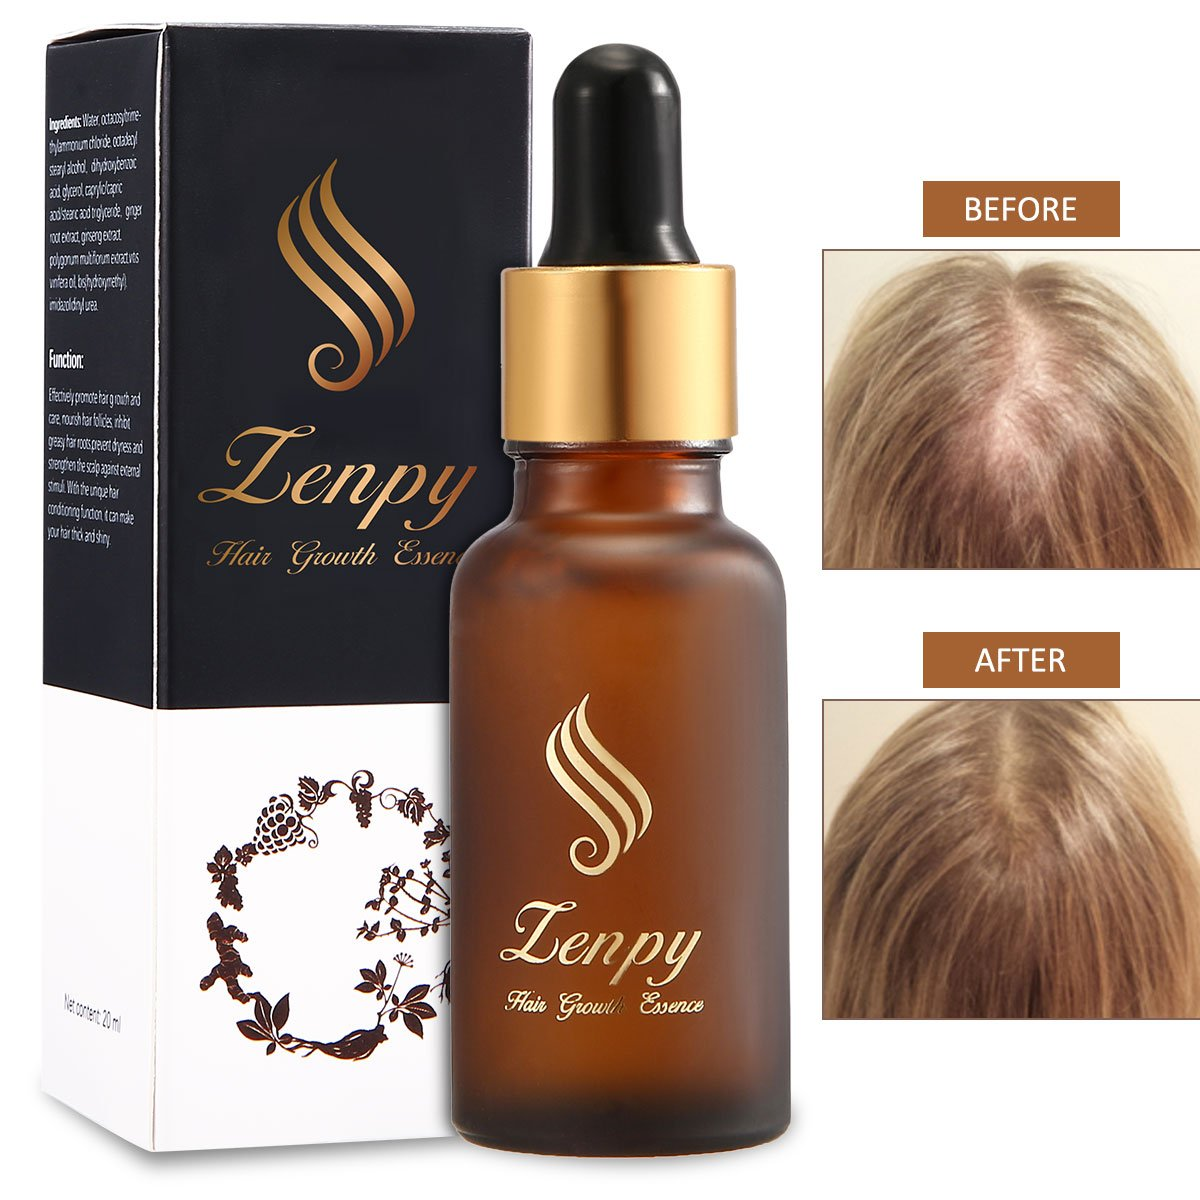 Zenpy Hair Growth Essence Oil Strengthens Hair Roots Grow Longer Anti Hair Loss & Hair Thinning Treatment Hair Serum Professional Hair Care Styling Products -20ml by Zenpy (Image #1)